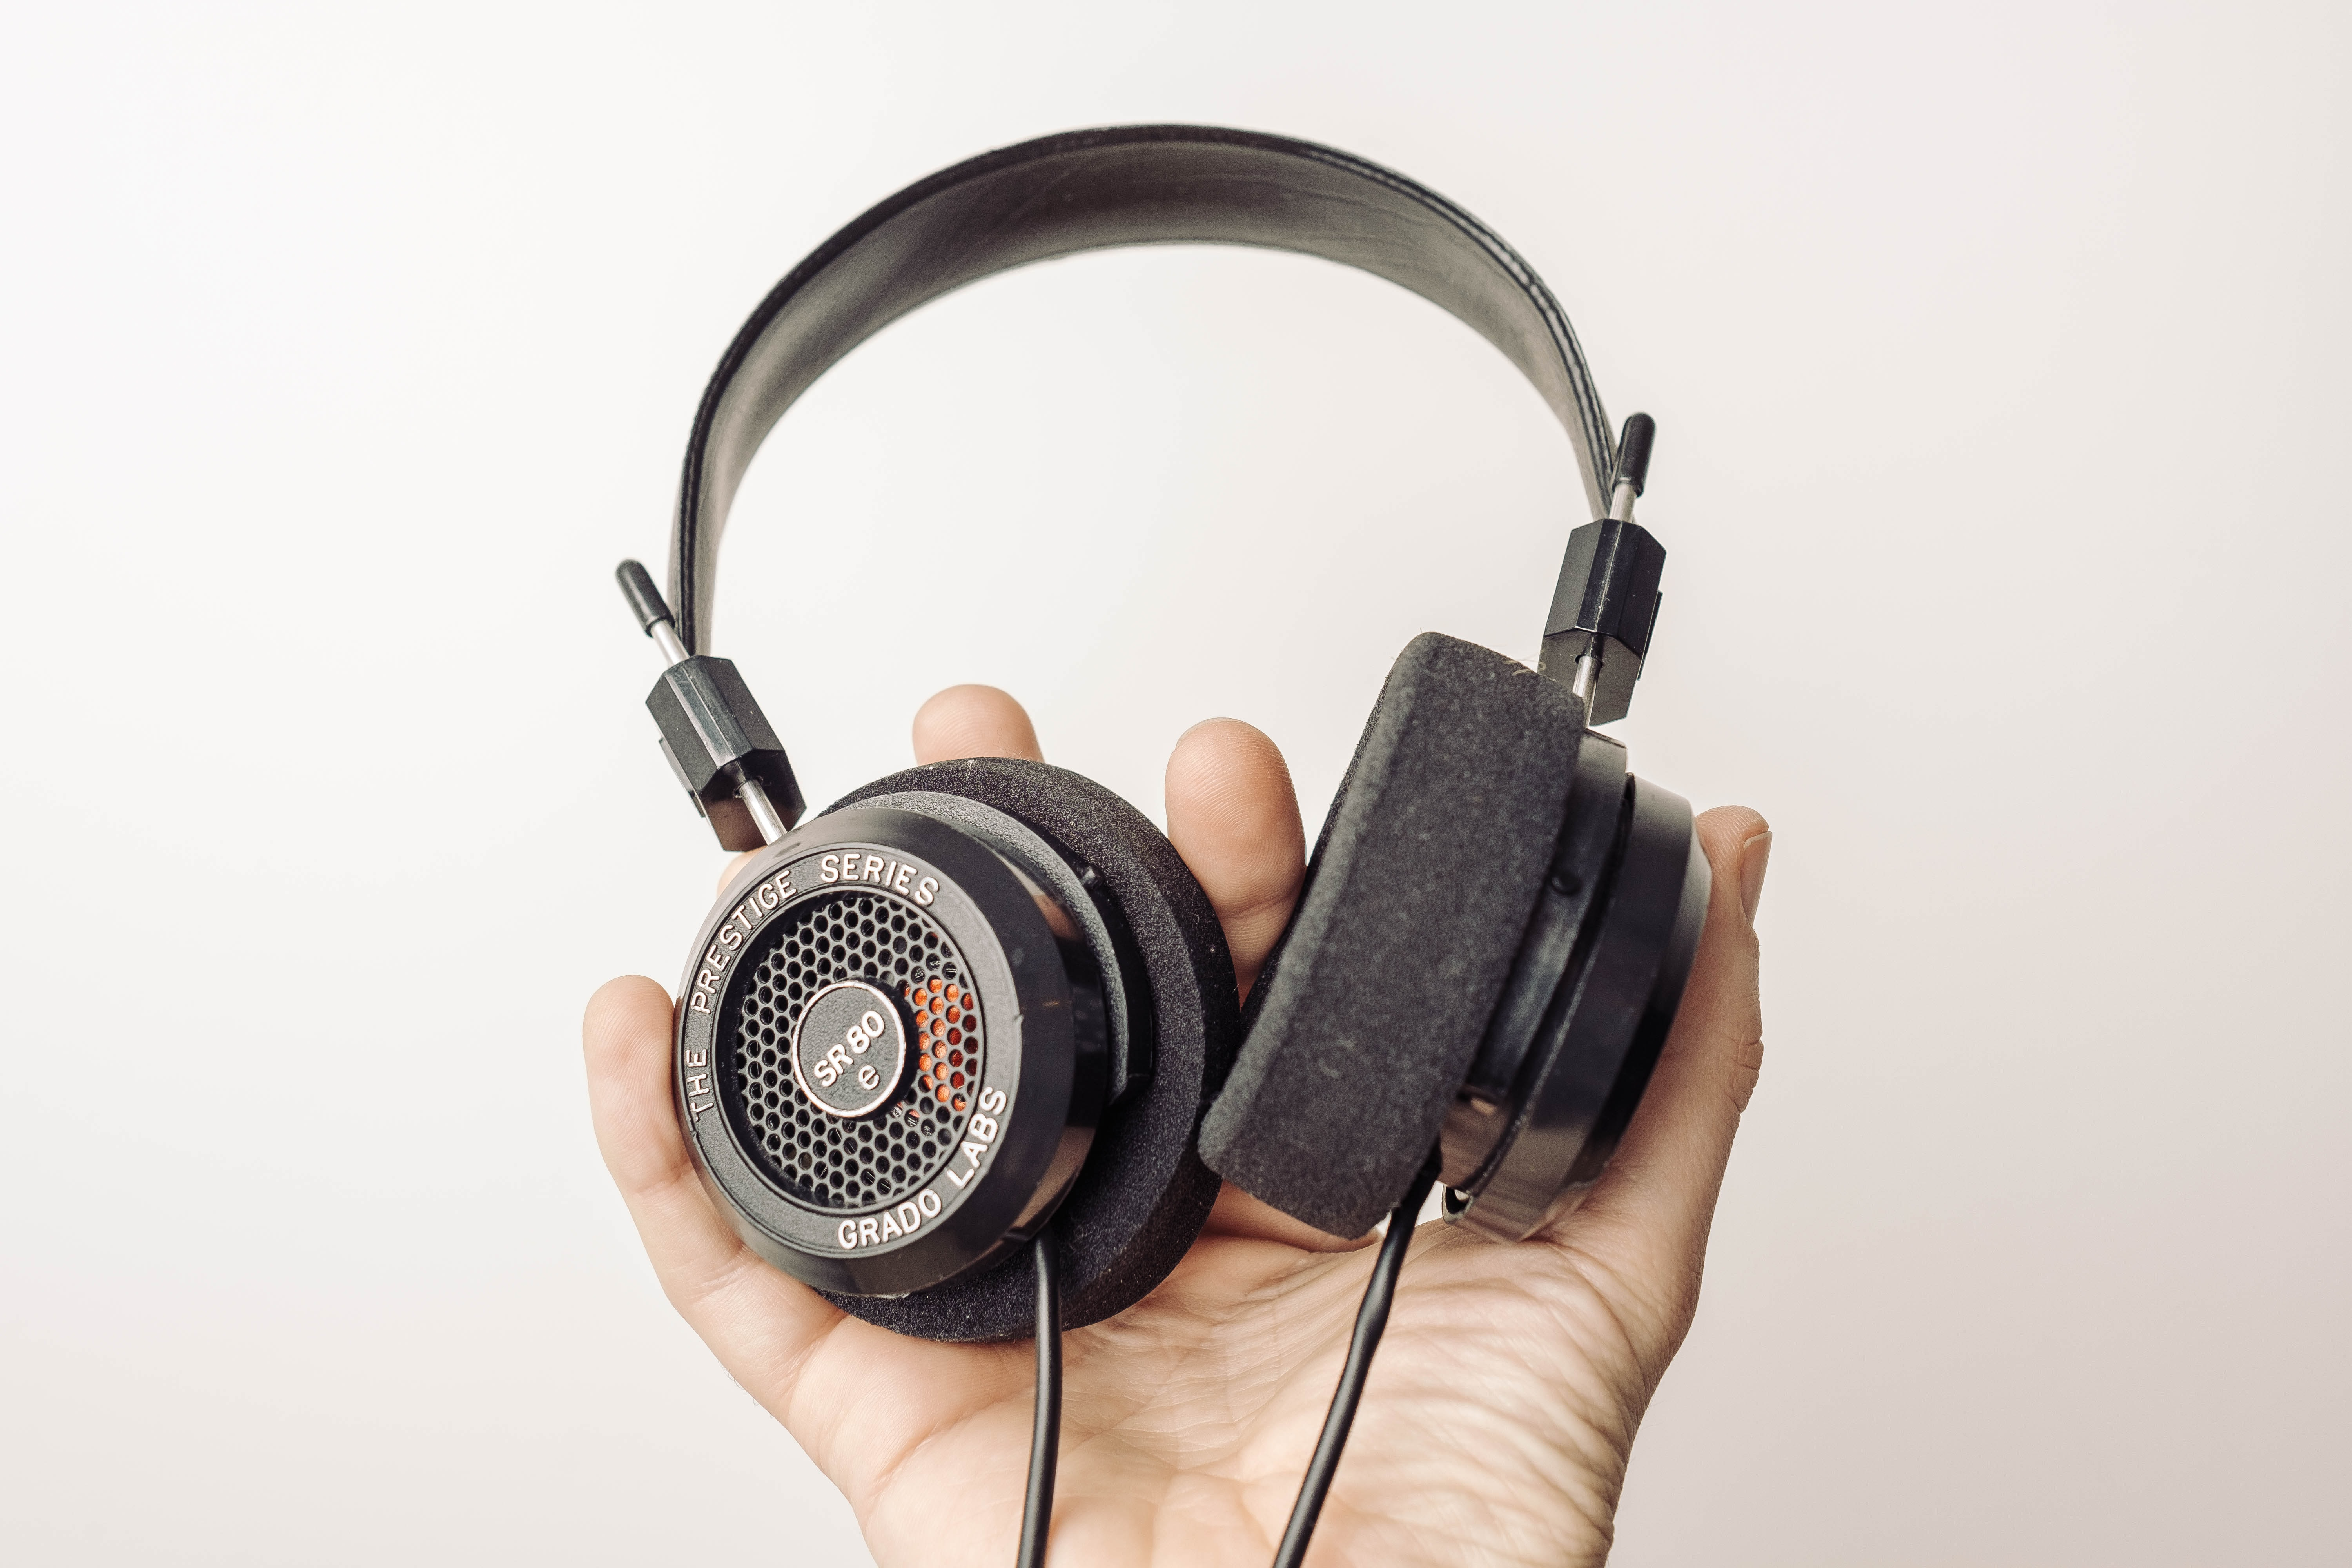 The Grado Headphones SR80e is held in a man's right hand.